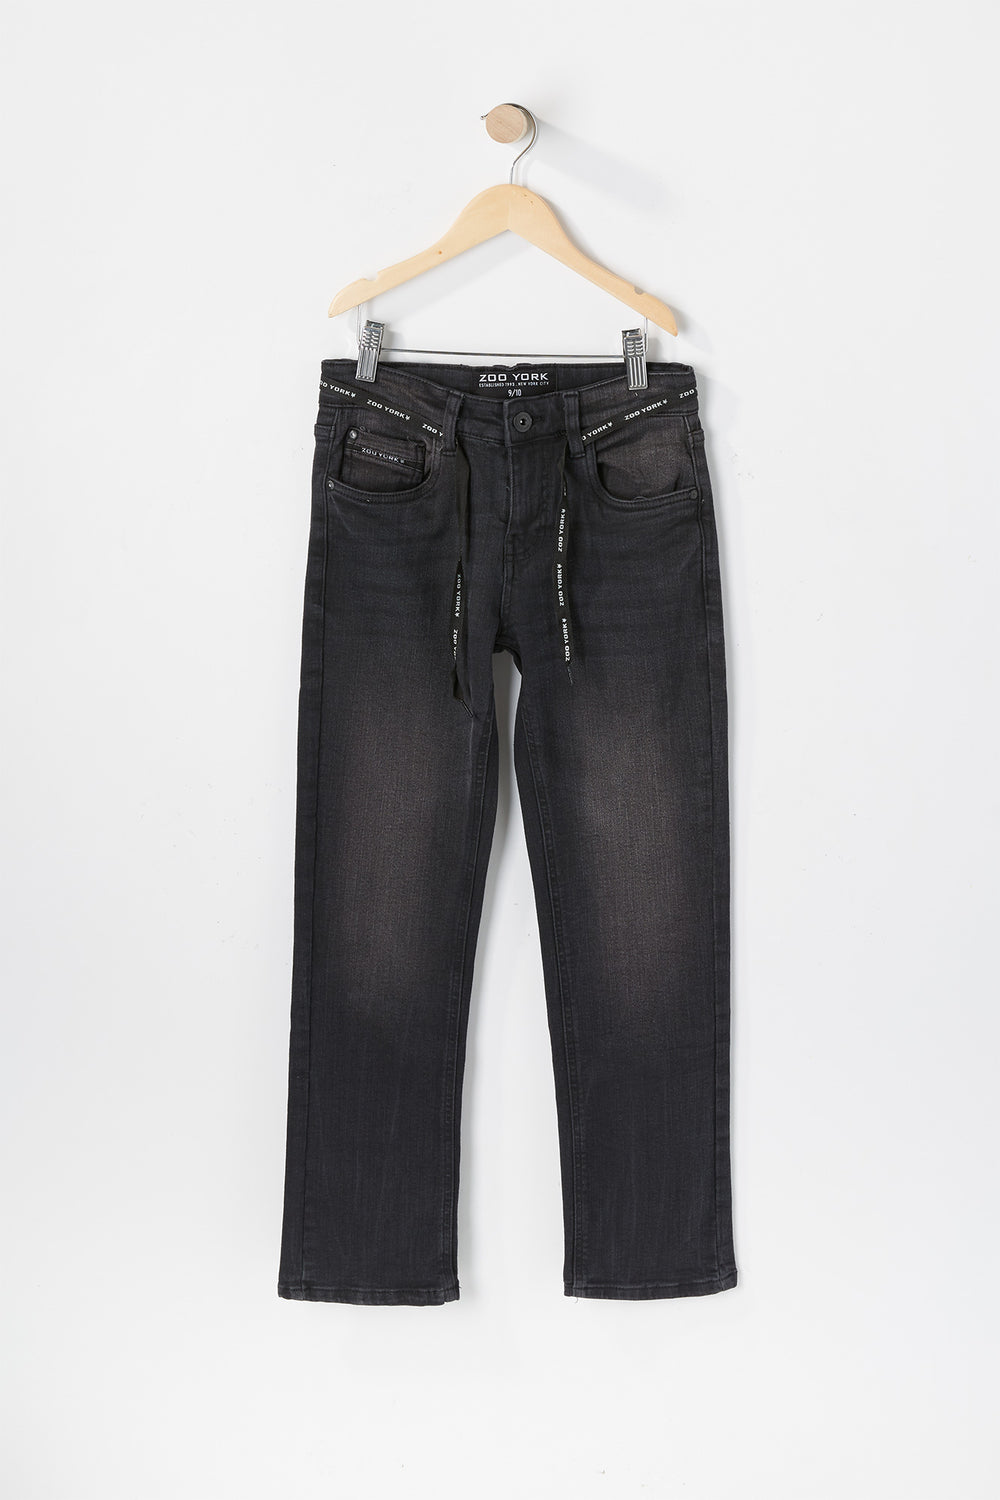 Zoo York Youth Slim Black Jeans Pure Black